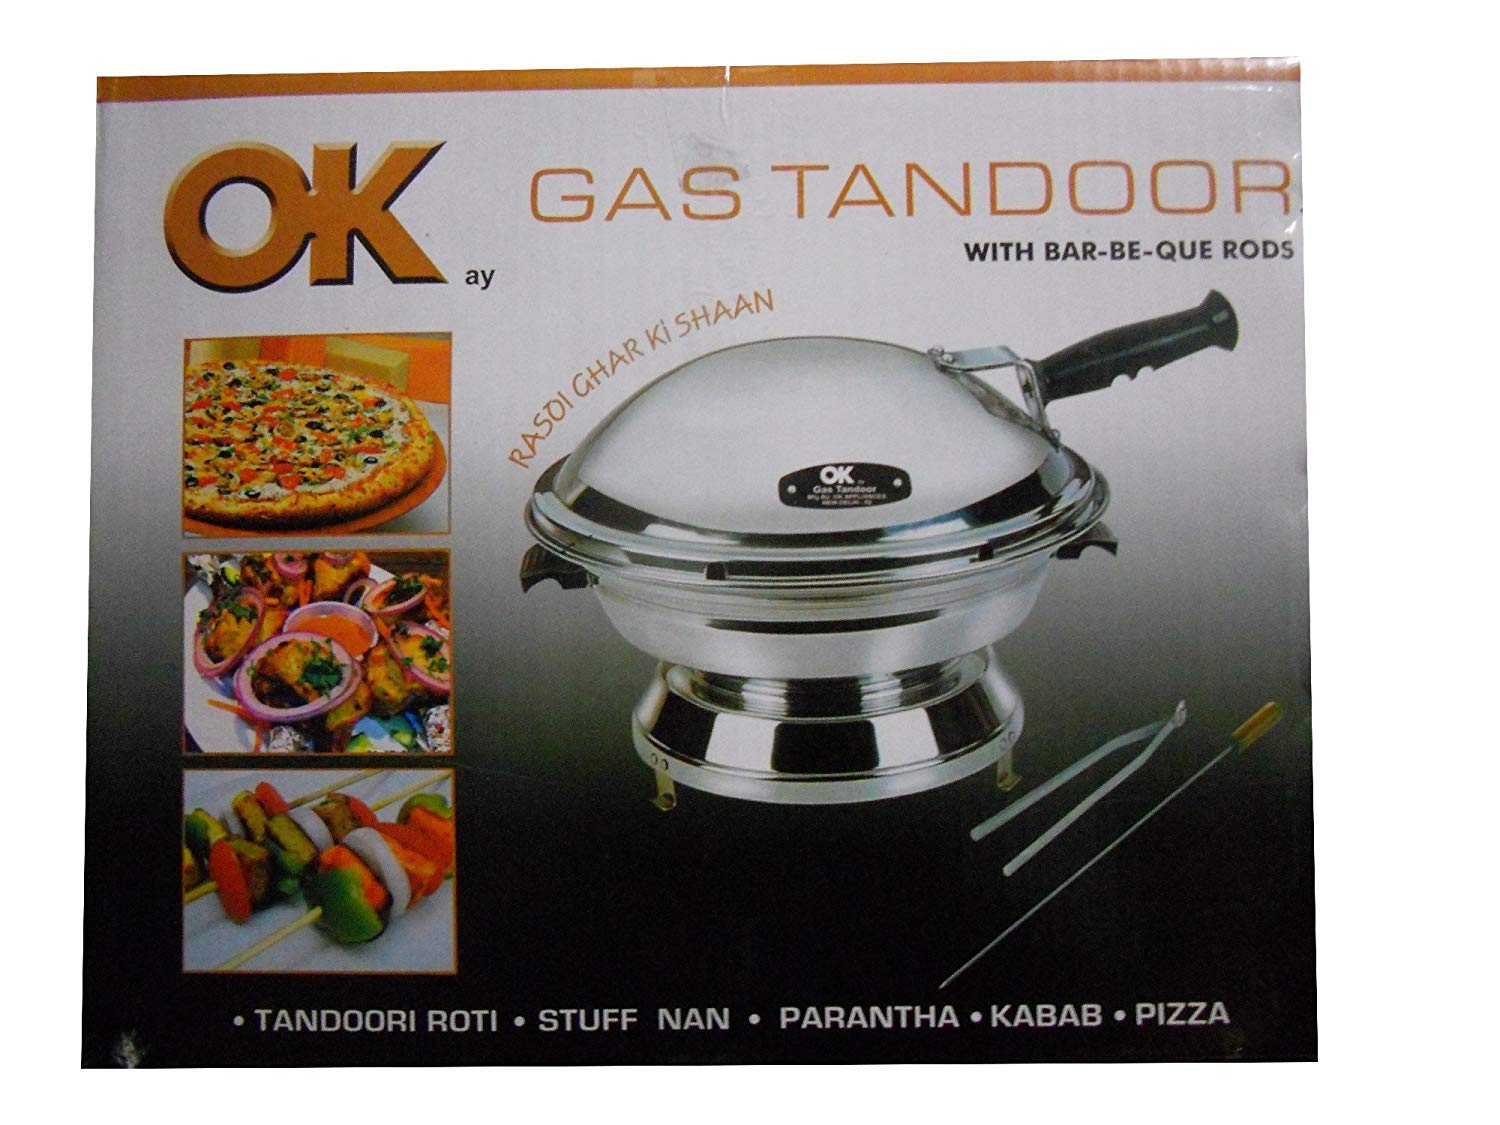 JOLLY GAS TANDOOR OK WITH BAR-BE-QUE RODS AS AN OVEN, AS A TOASTER,AS A DAL BATI MAKER